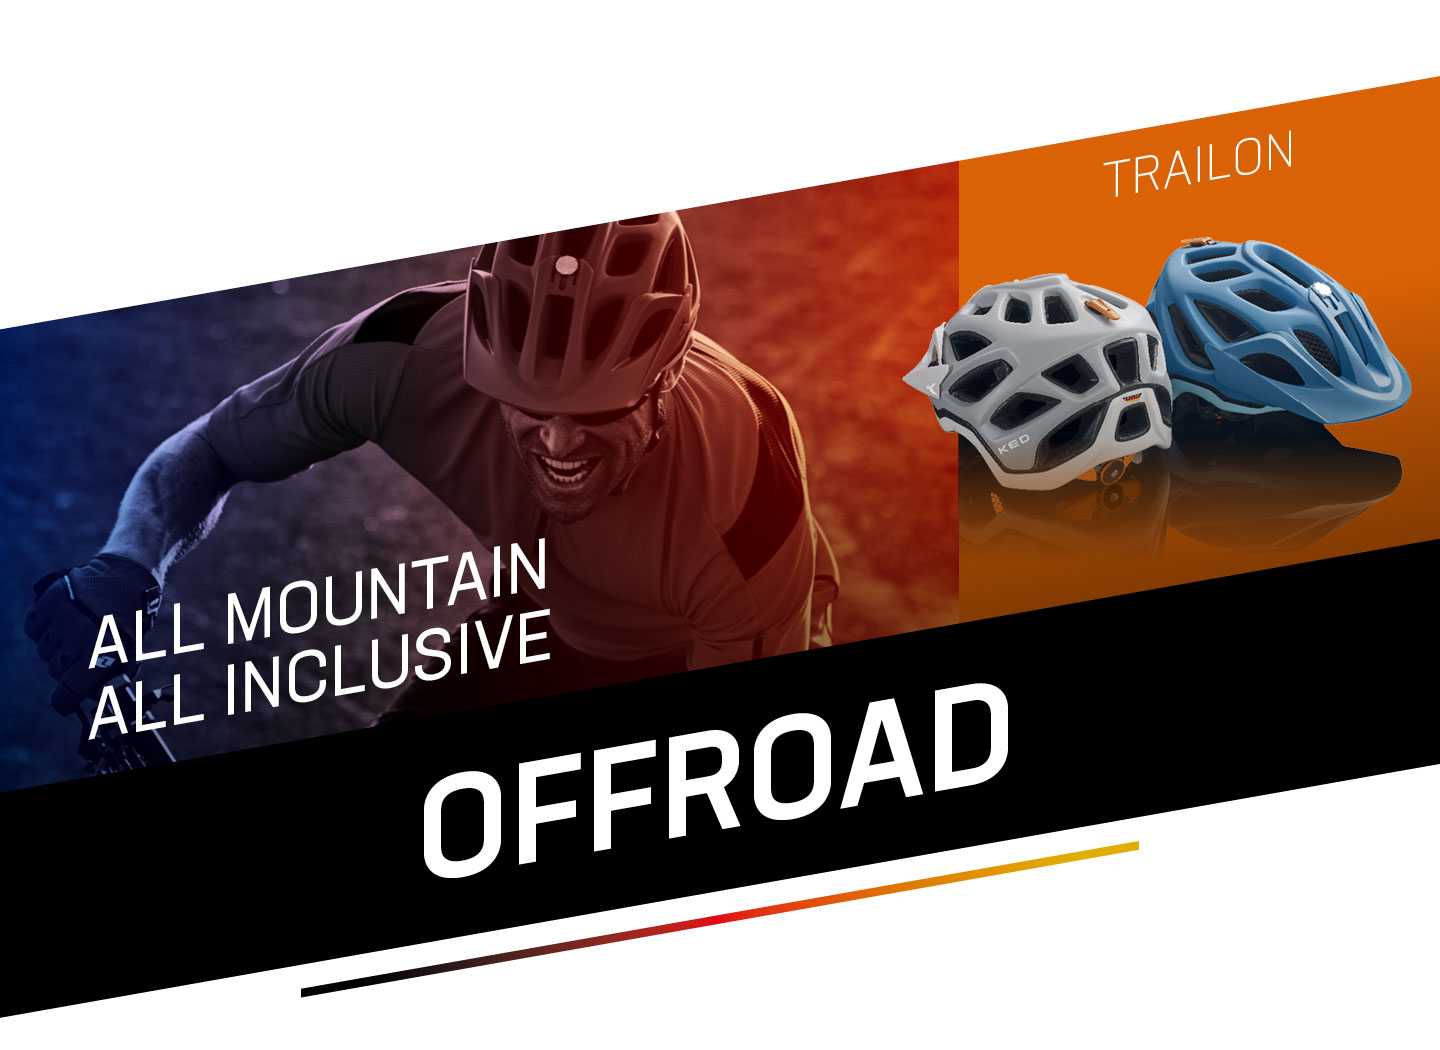 Offroad - All Mountain, All Inclusive